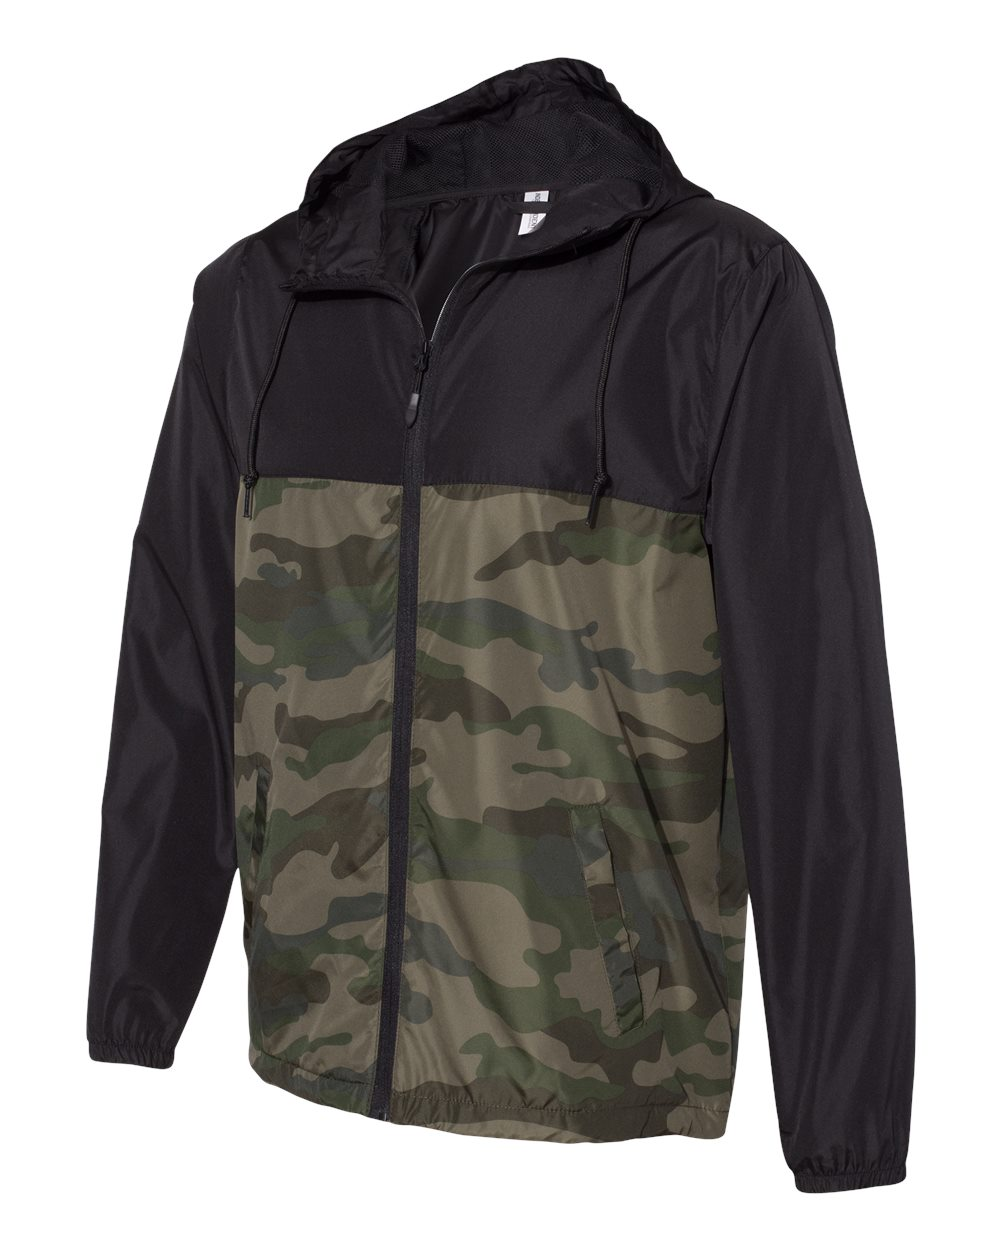 Independent_Trading_Co._EXP54LWZ_Black__Forest_Camo_Side_High.jpg